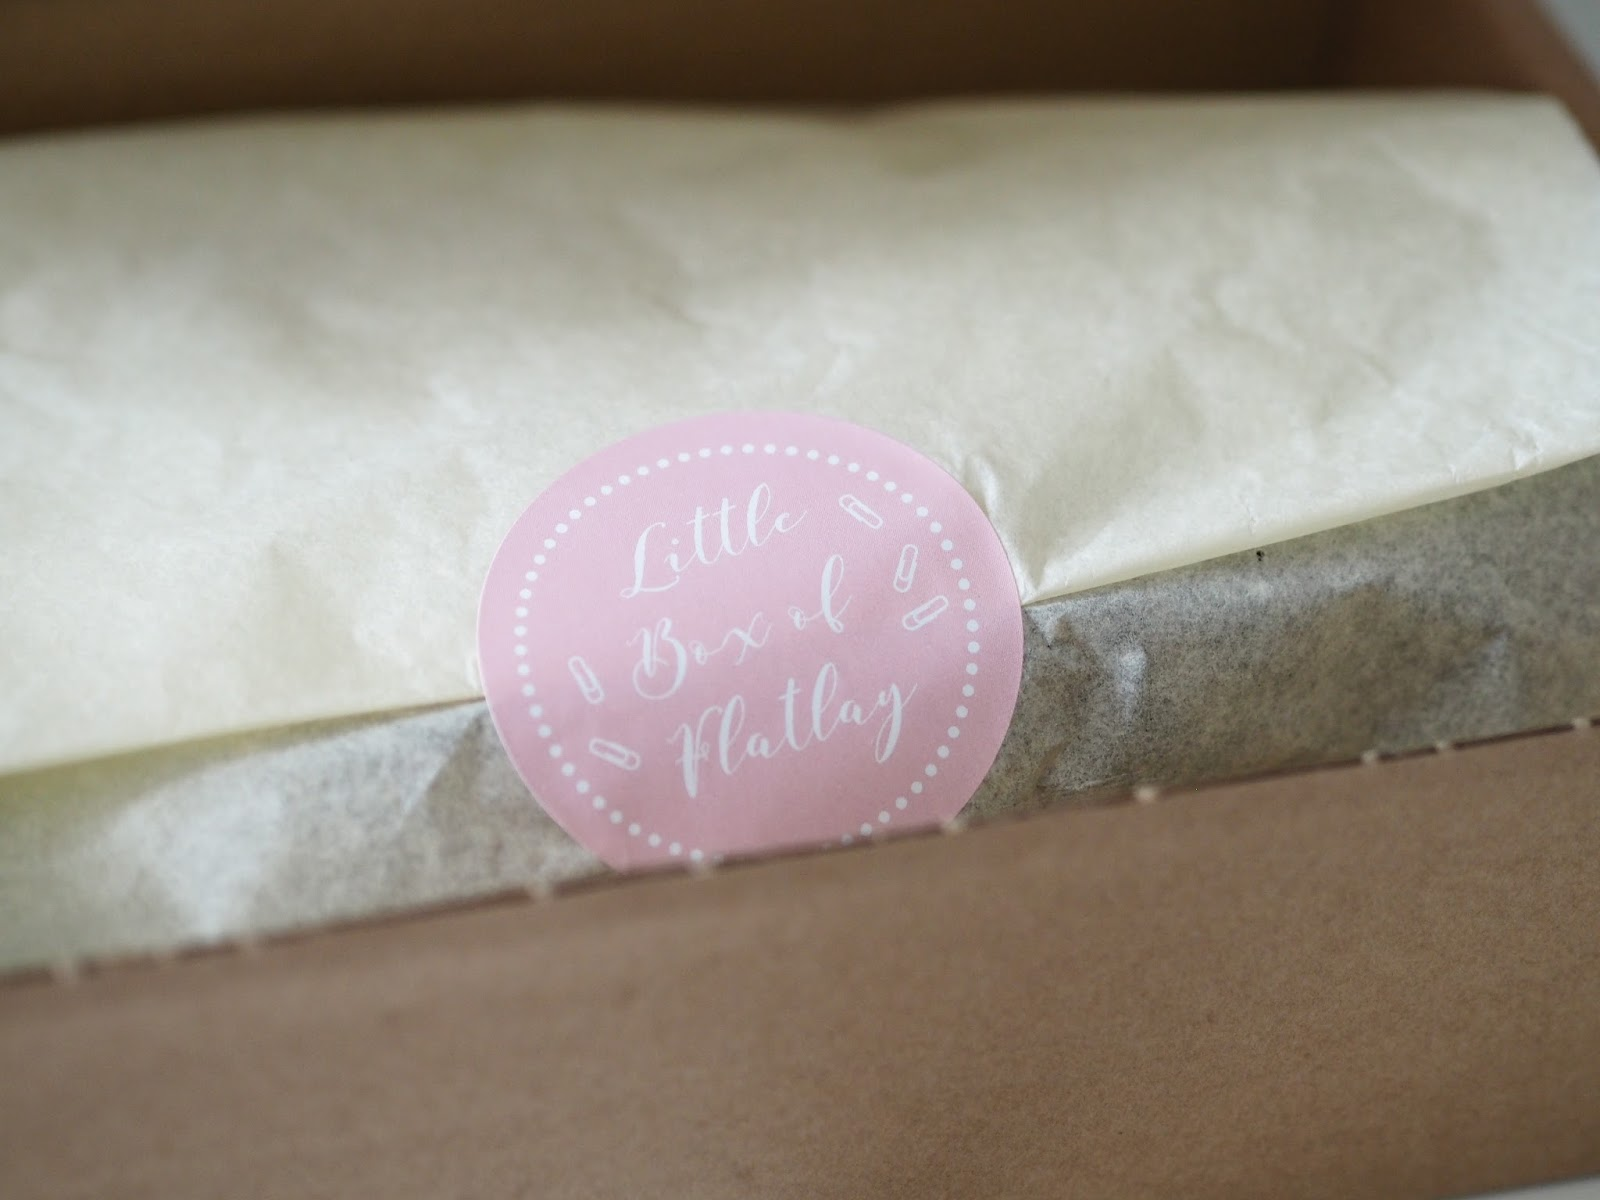 Little Box of Flatlay \ review \ blogger \ subscription box \ props \ Priceless Life of Mine \ Over 40 lifestyle blog